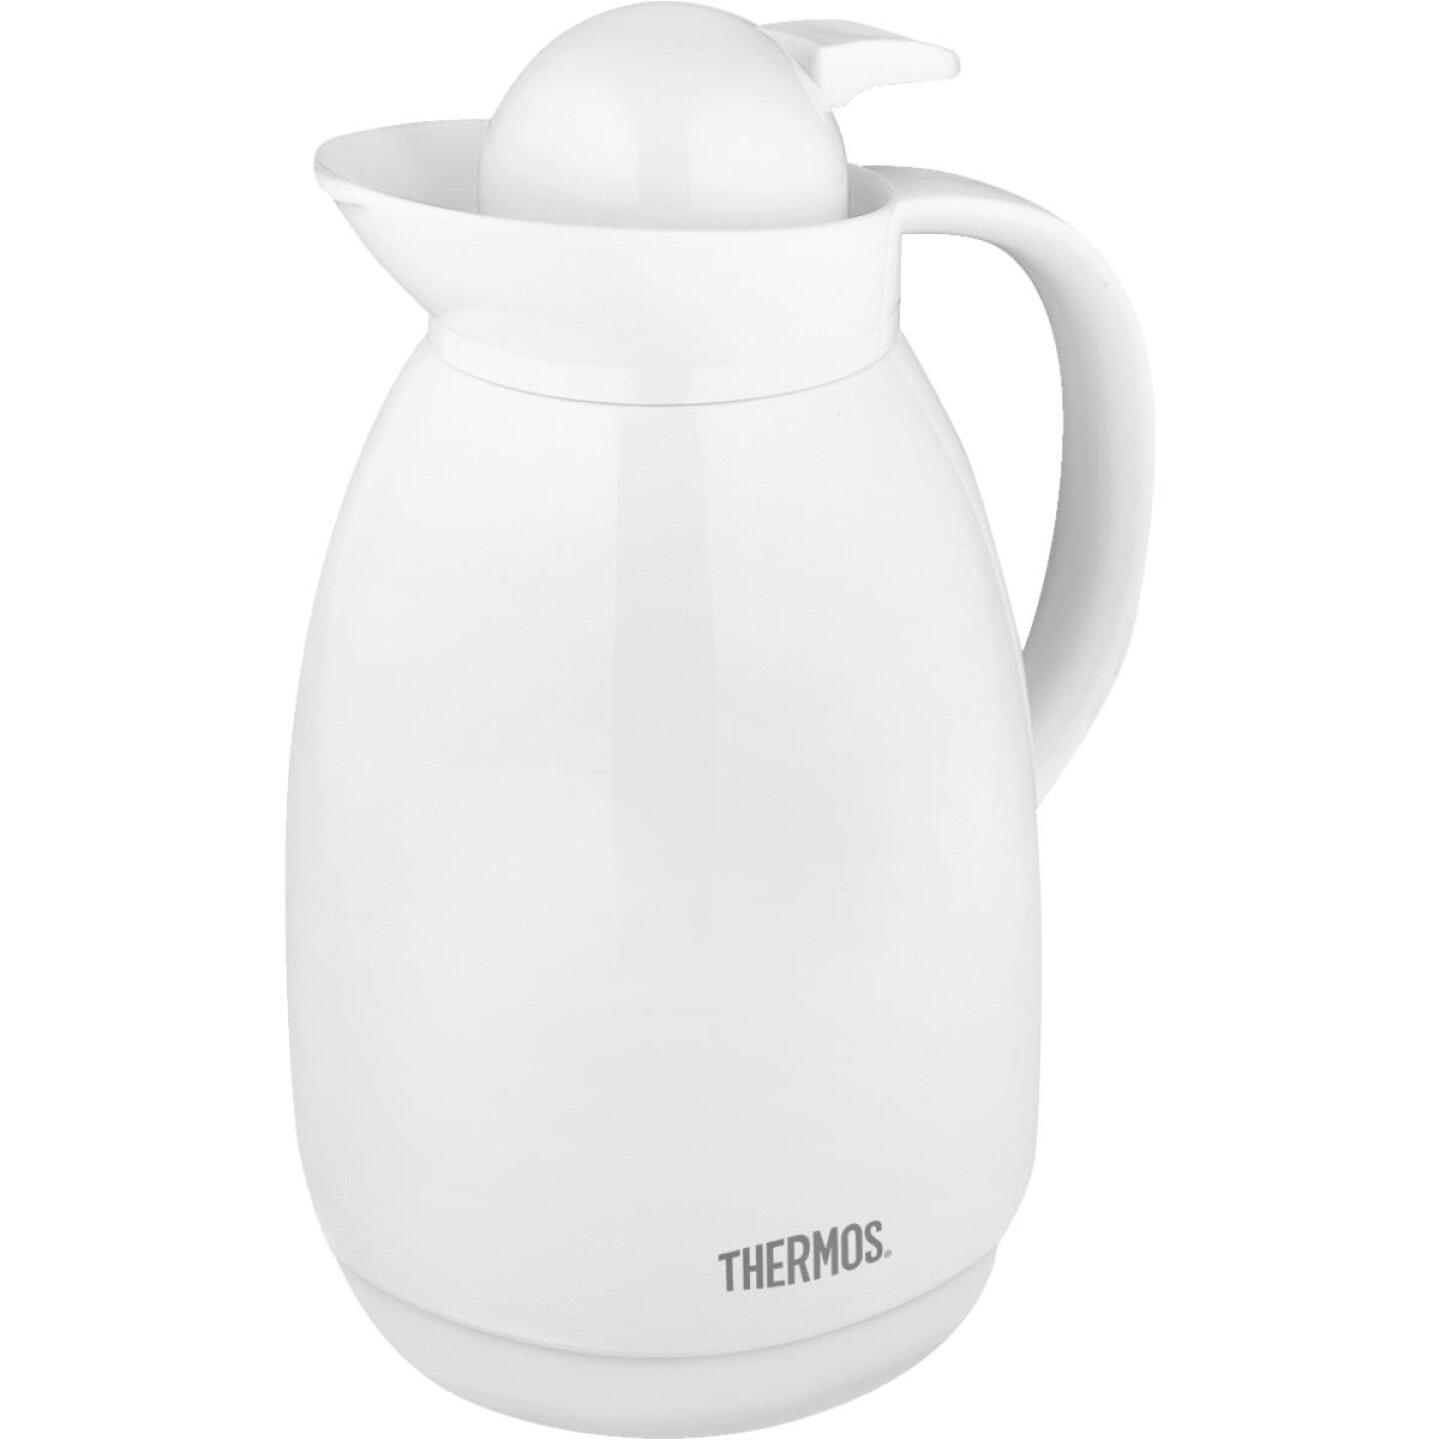 Thermos White Vacuum Insulated Glass Carafe  Image 1